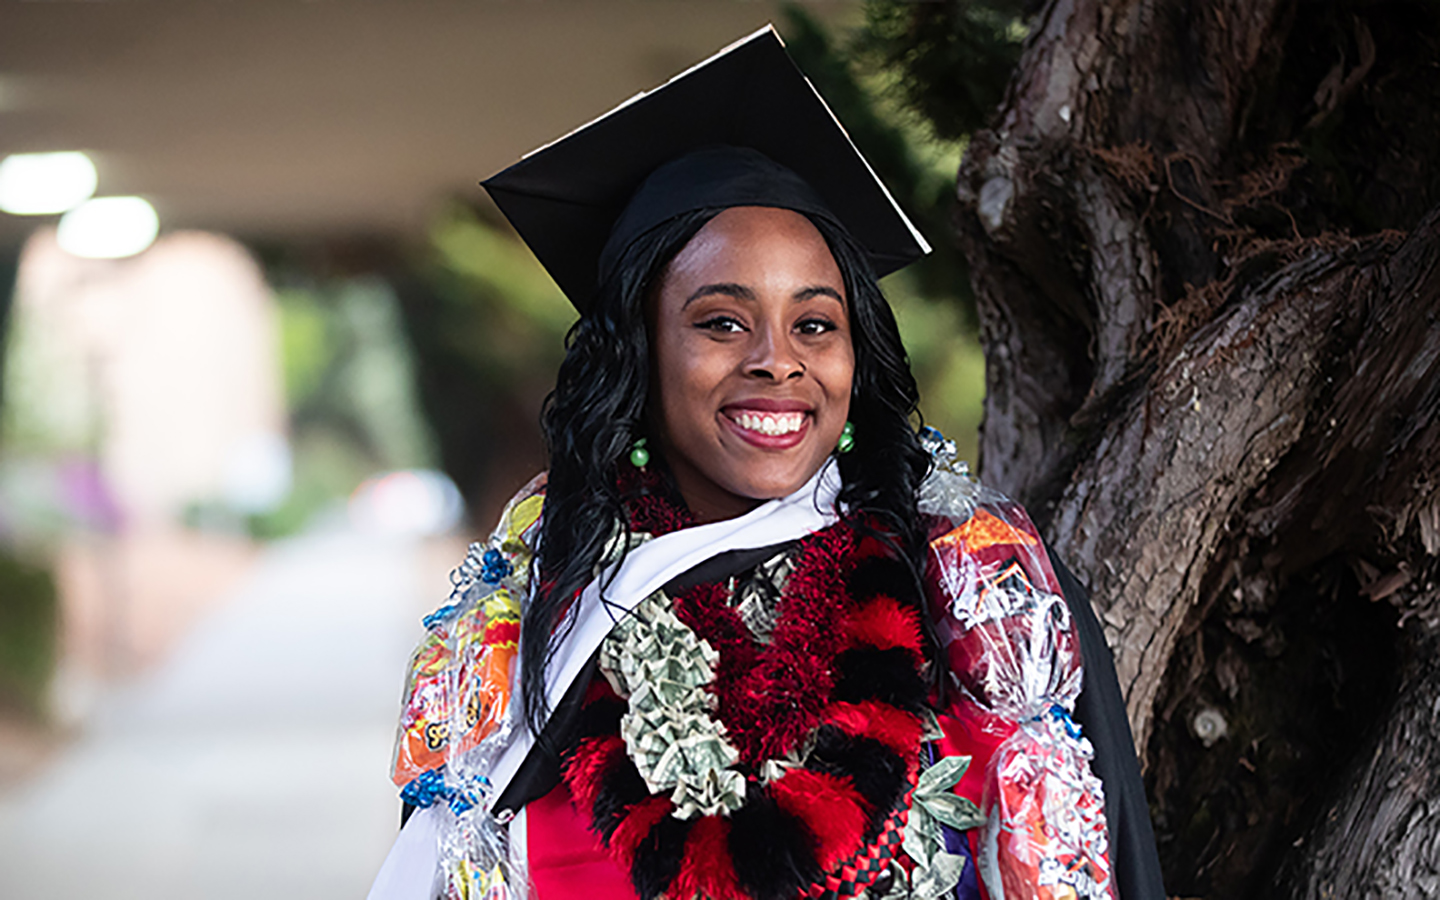 Holy Names University 2019 graduate smiling in cap and gown